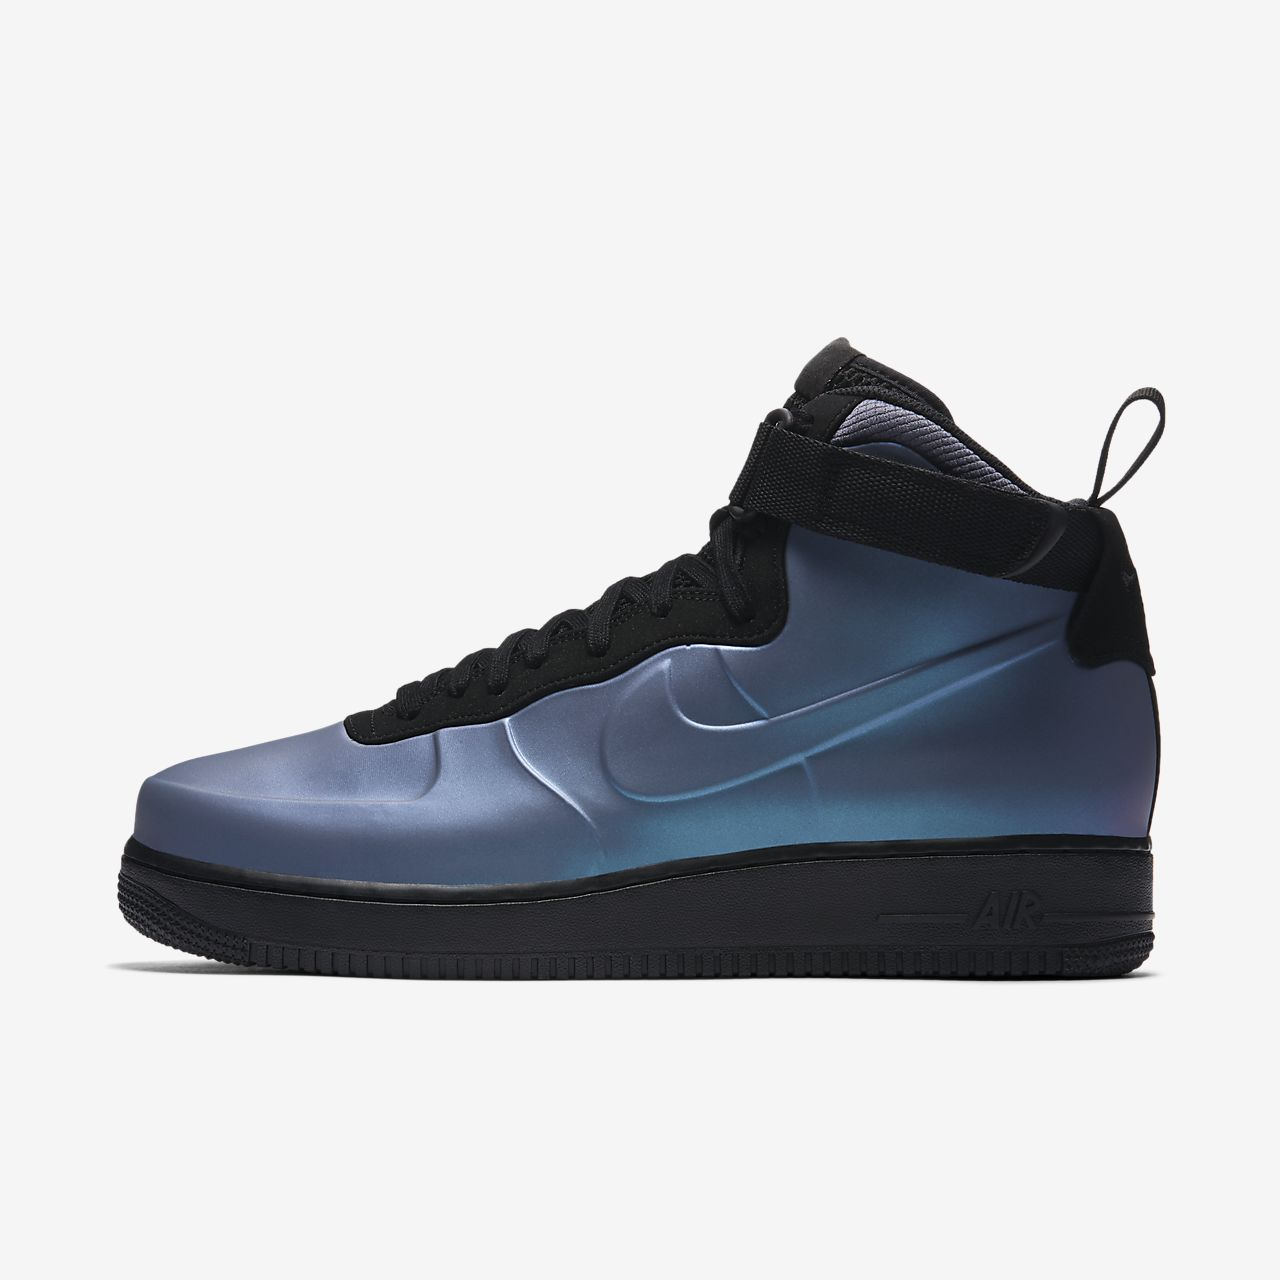 nike uomo scarpe 2018 air force